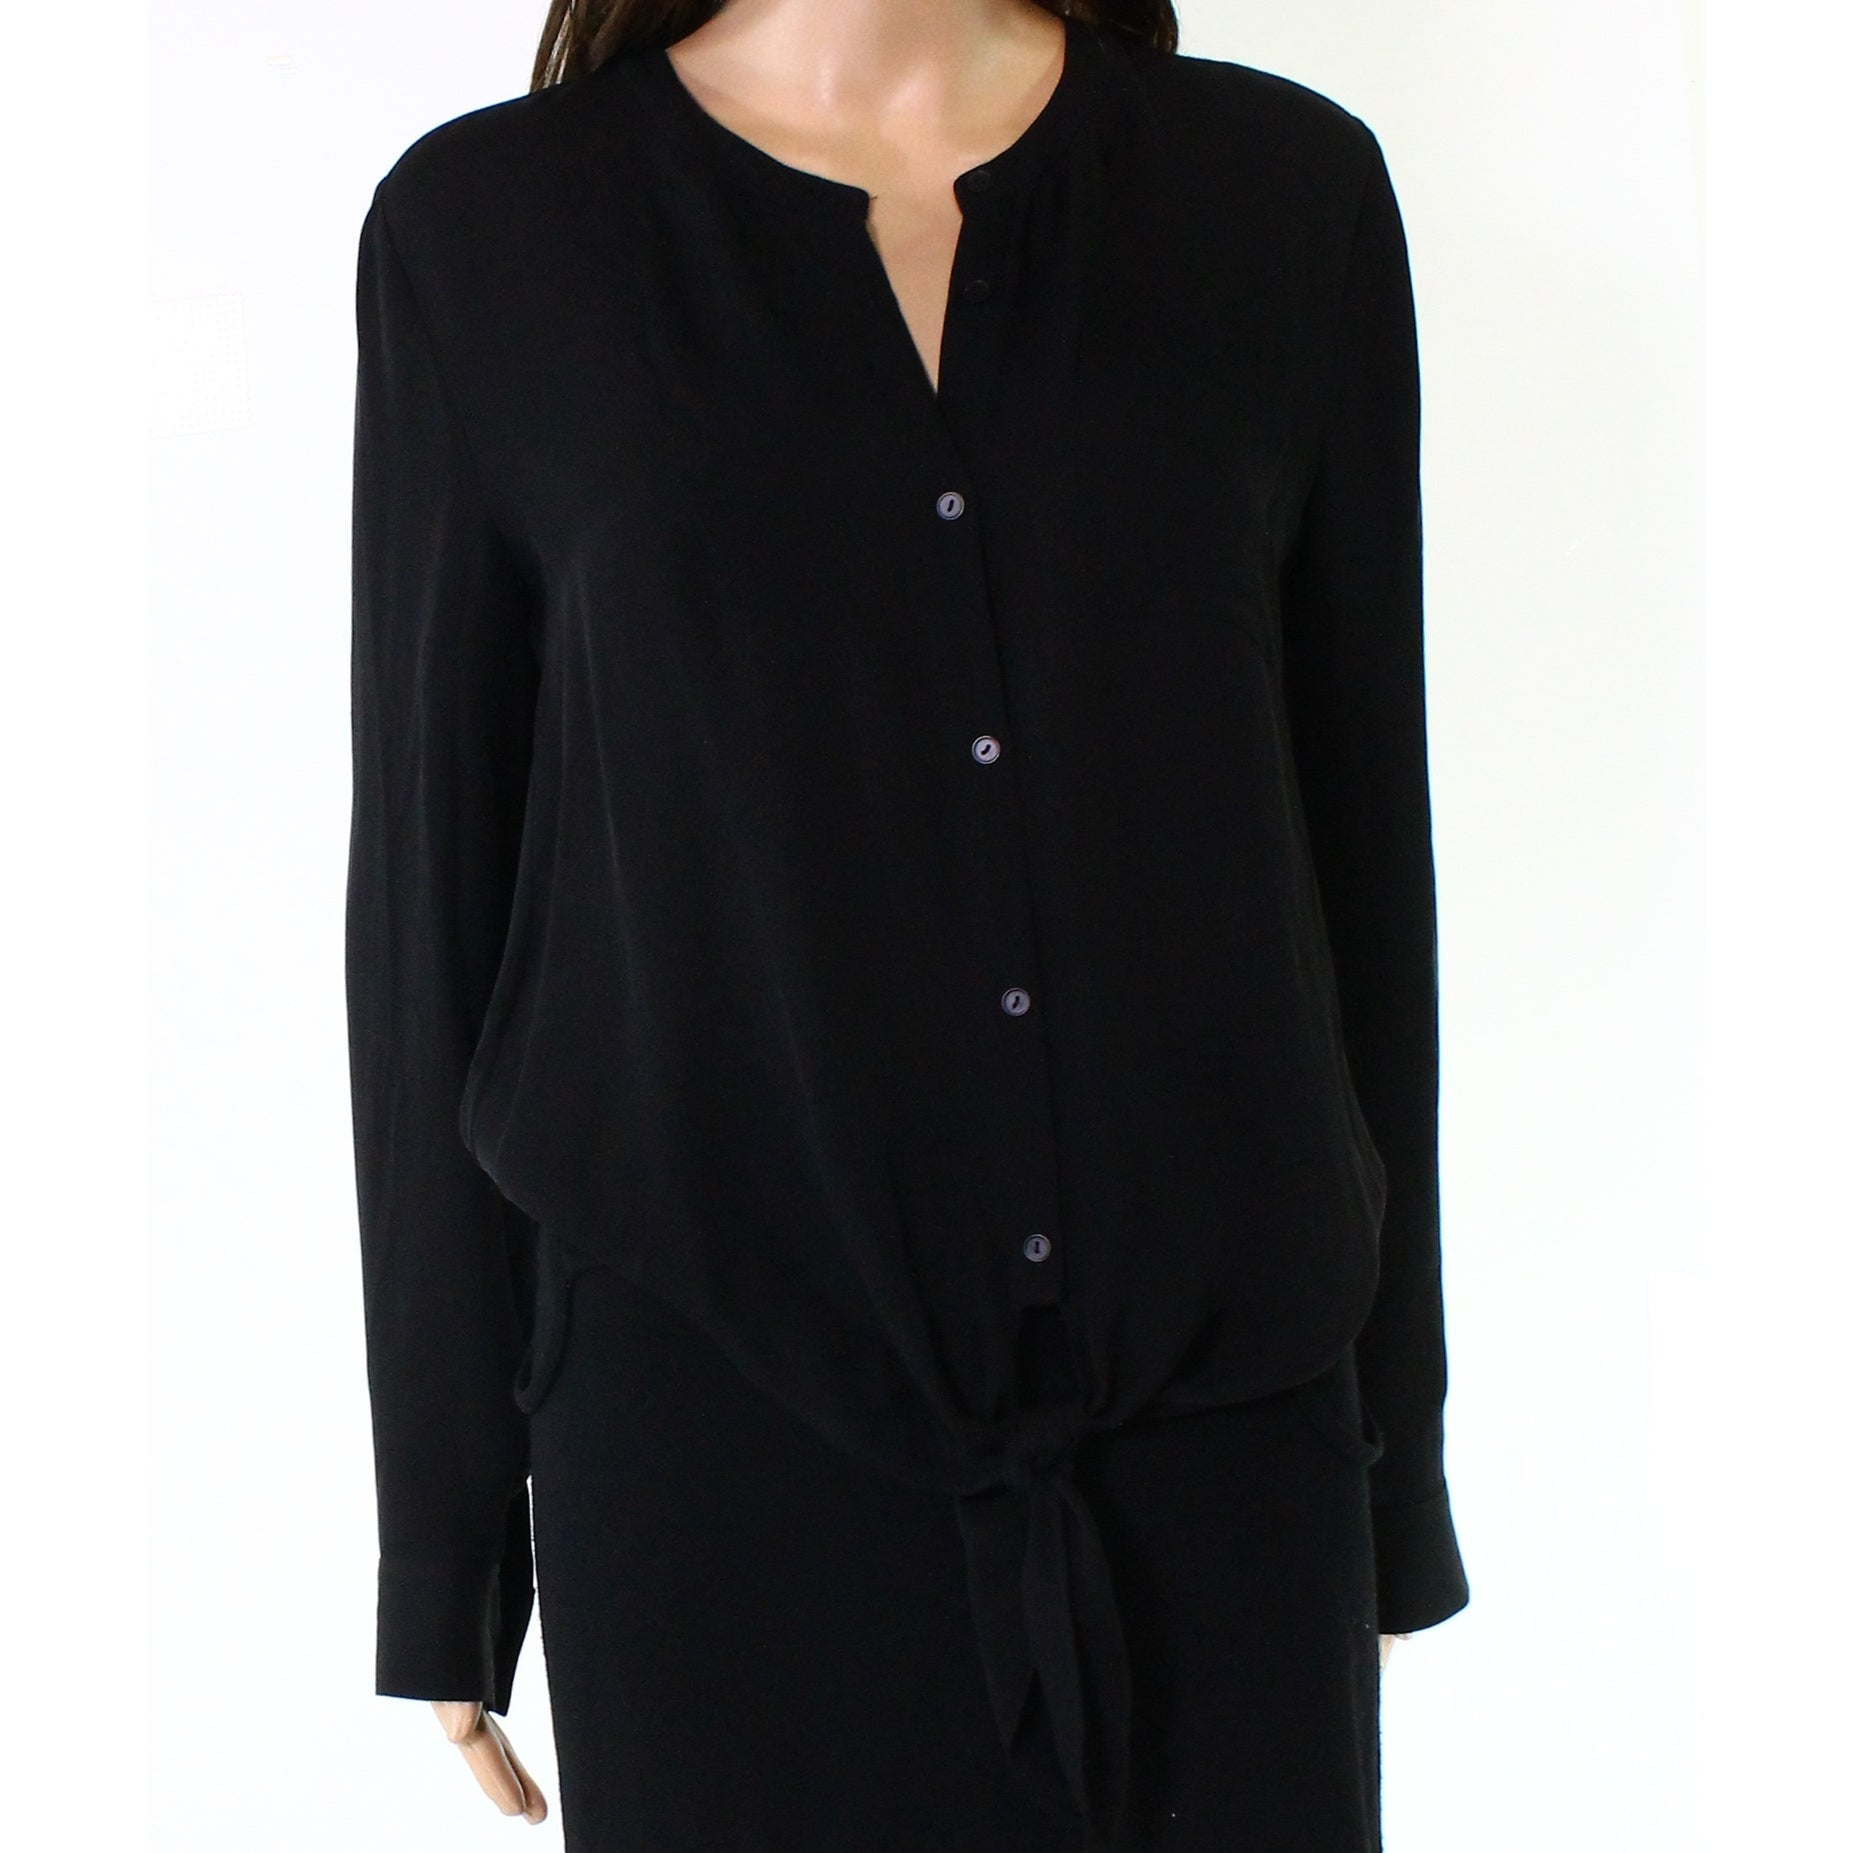 79741ba9c Silk Tops | Find Great Women's Clothing Deals Shopping at Overstock